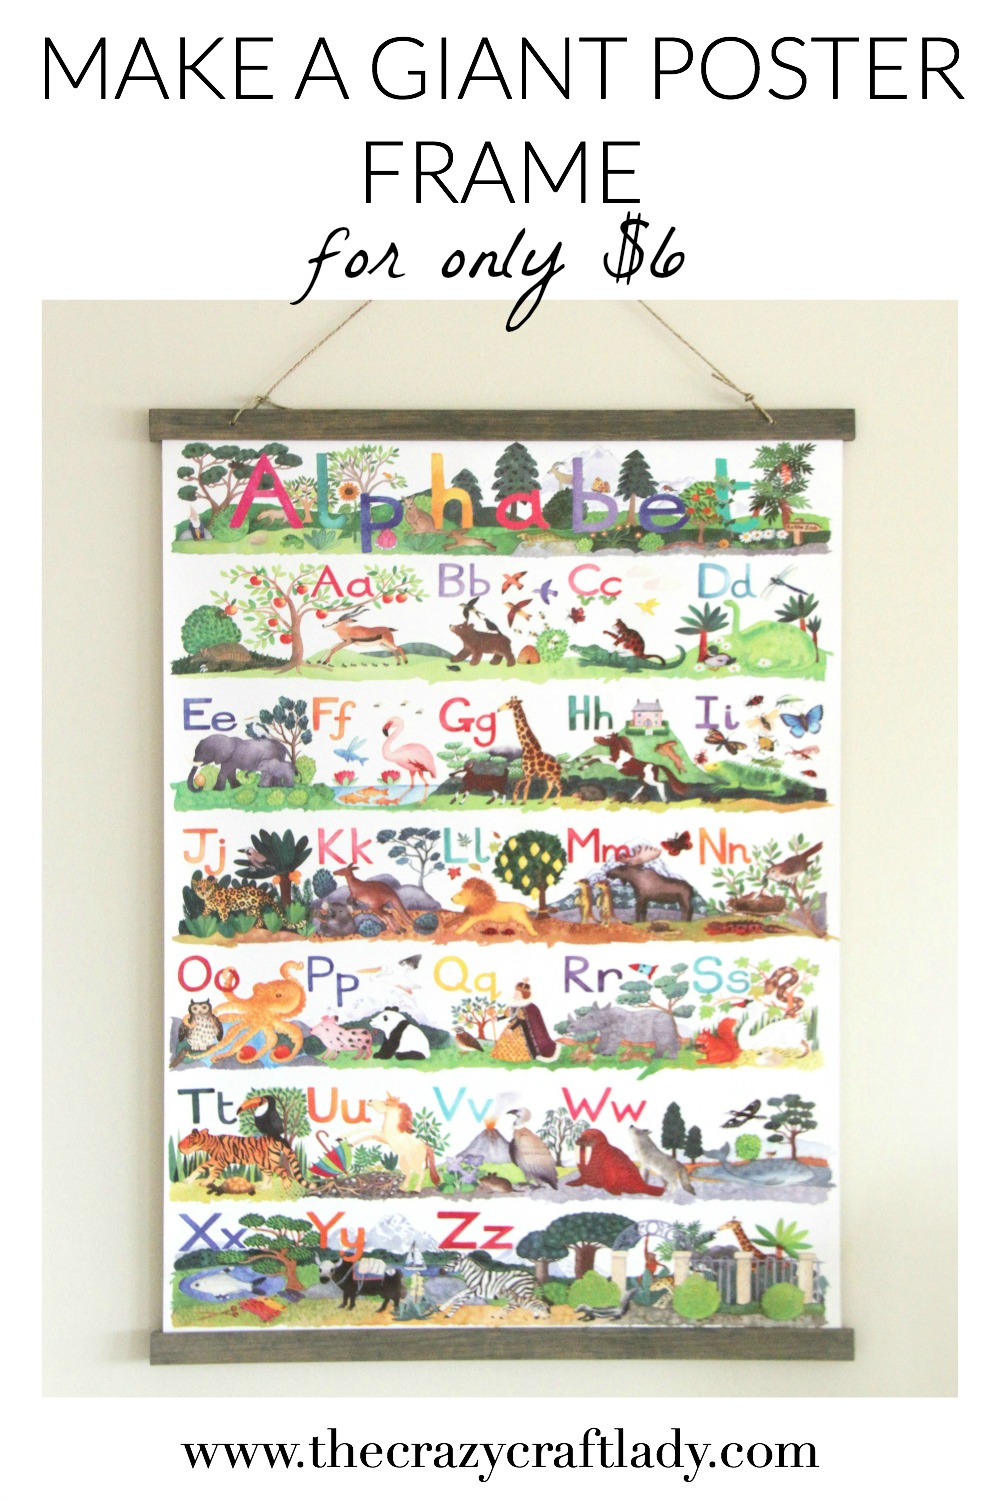 How to Make a Large Poster Frame {for only $6} - The Crazy Craft Lady